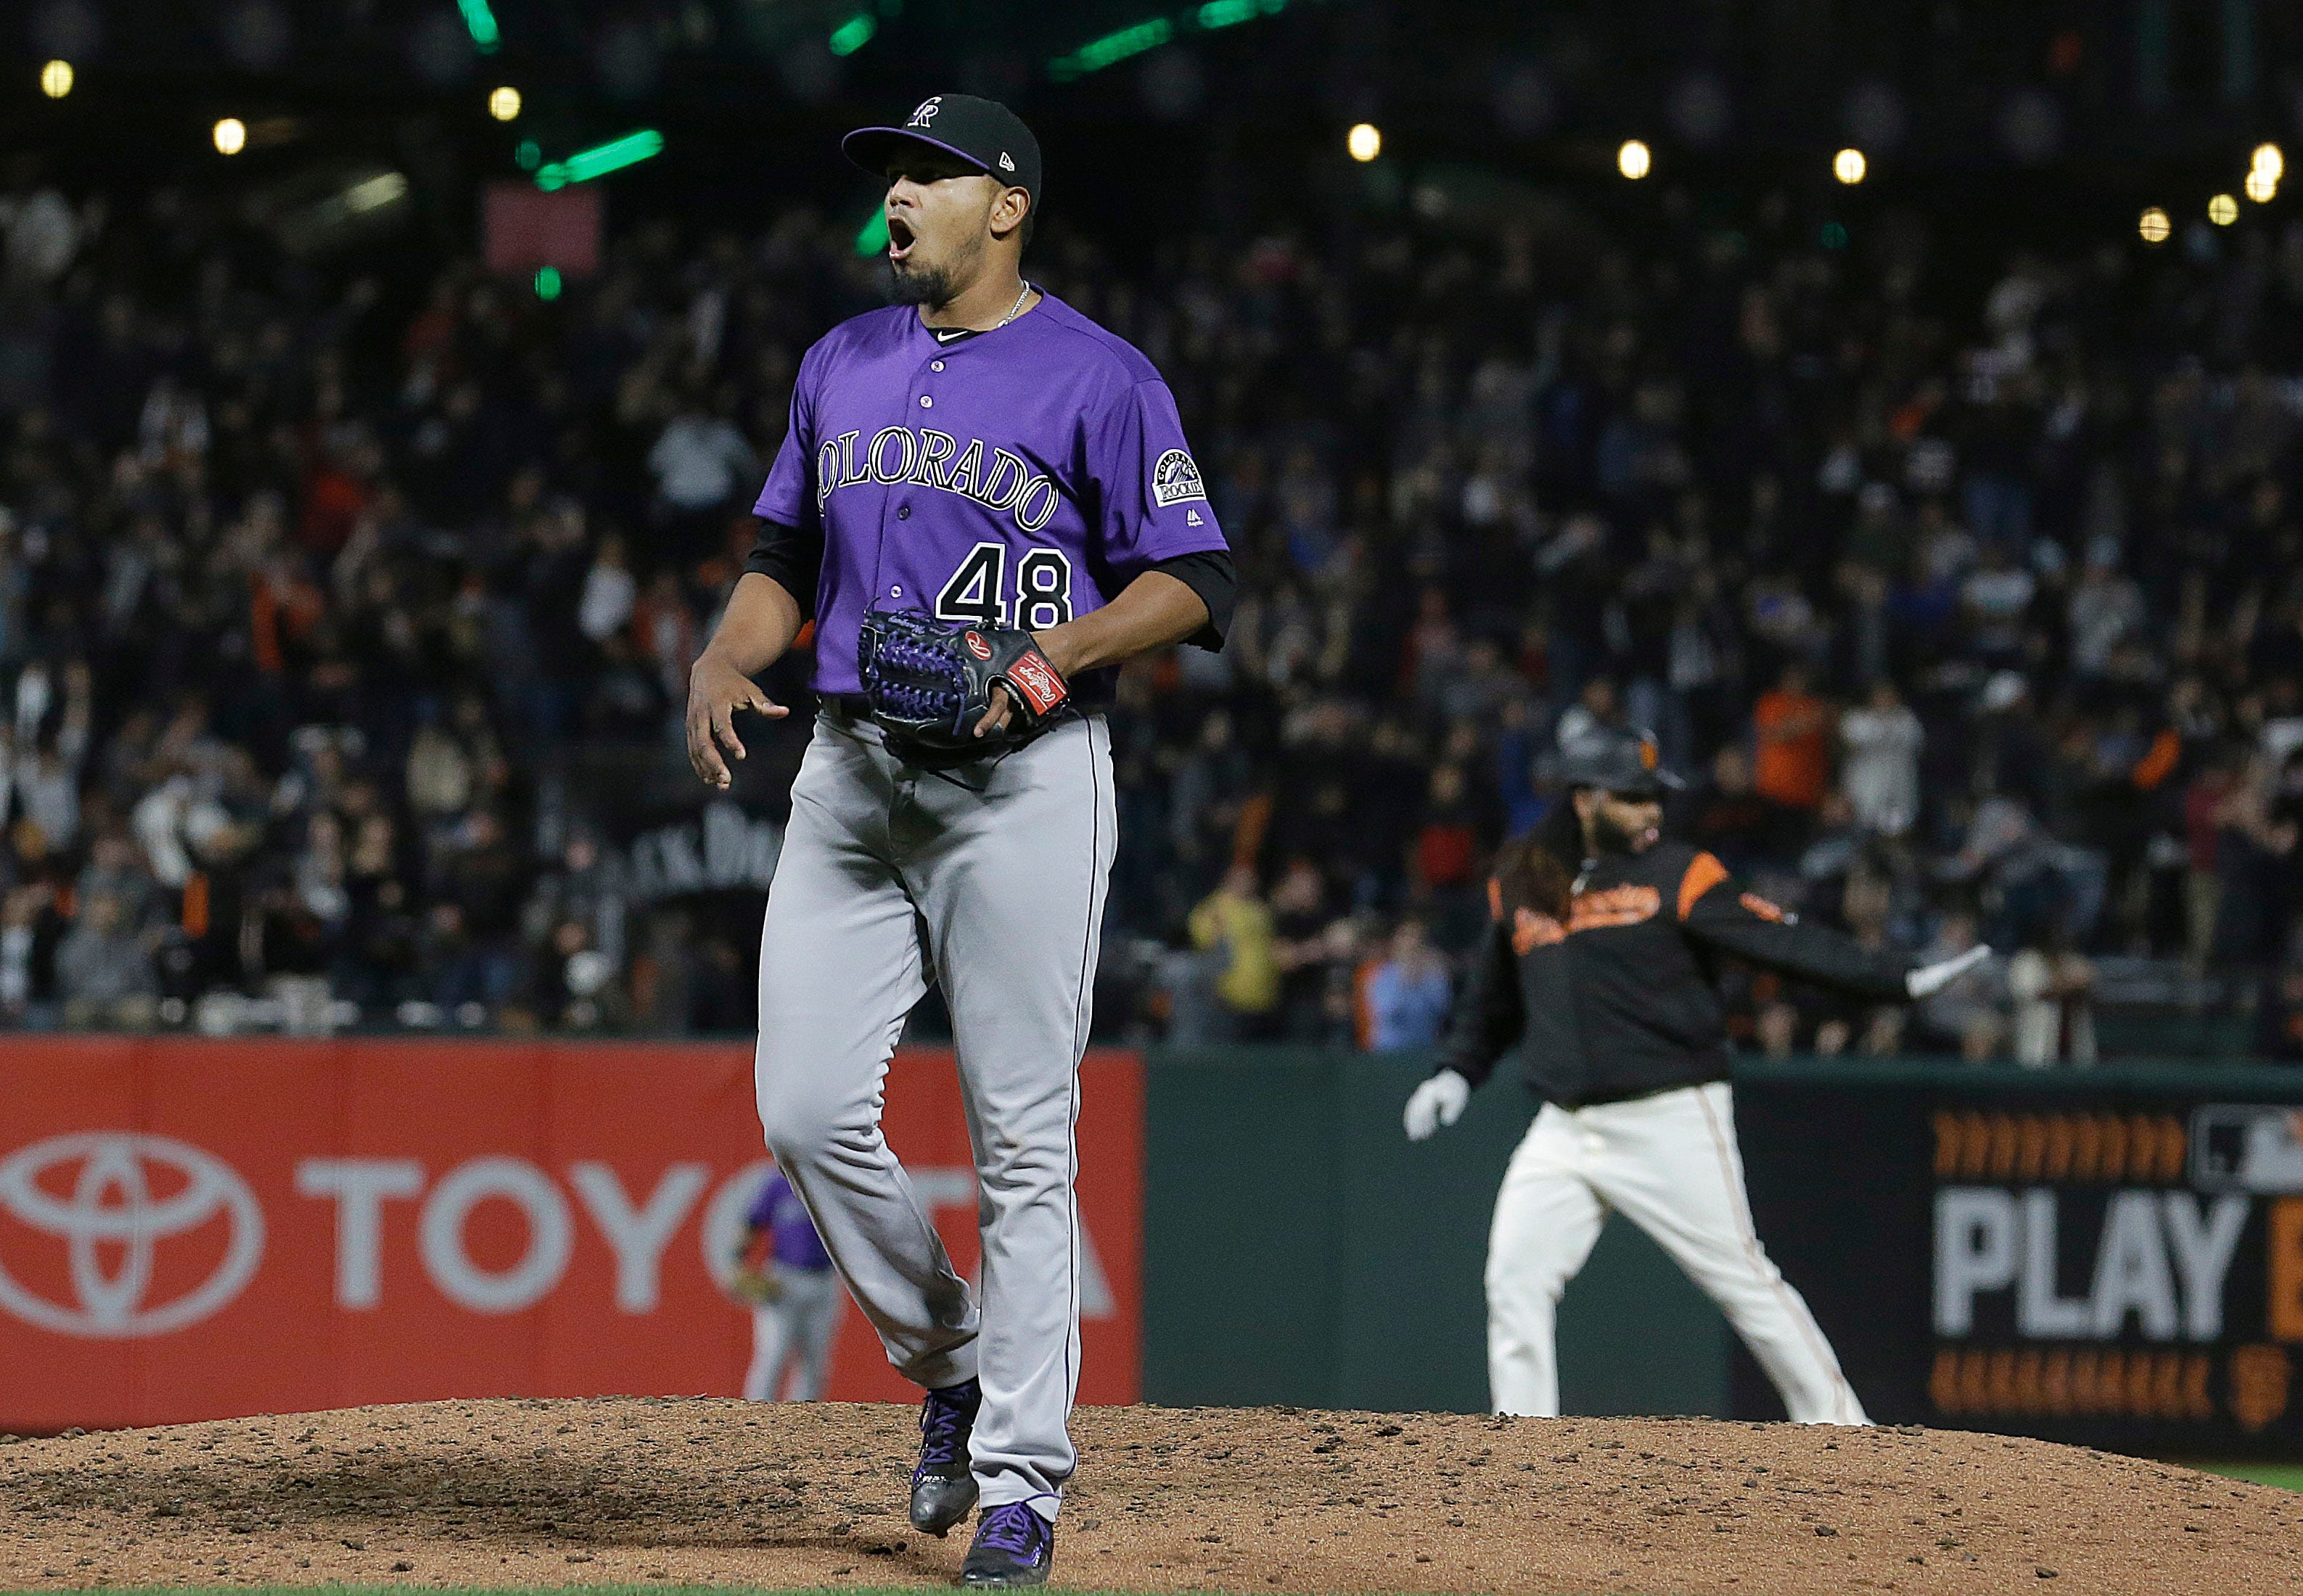 Contending Rockies lose early lead, fall to Giants 4-3